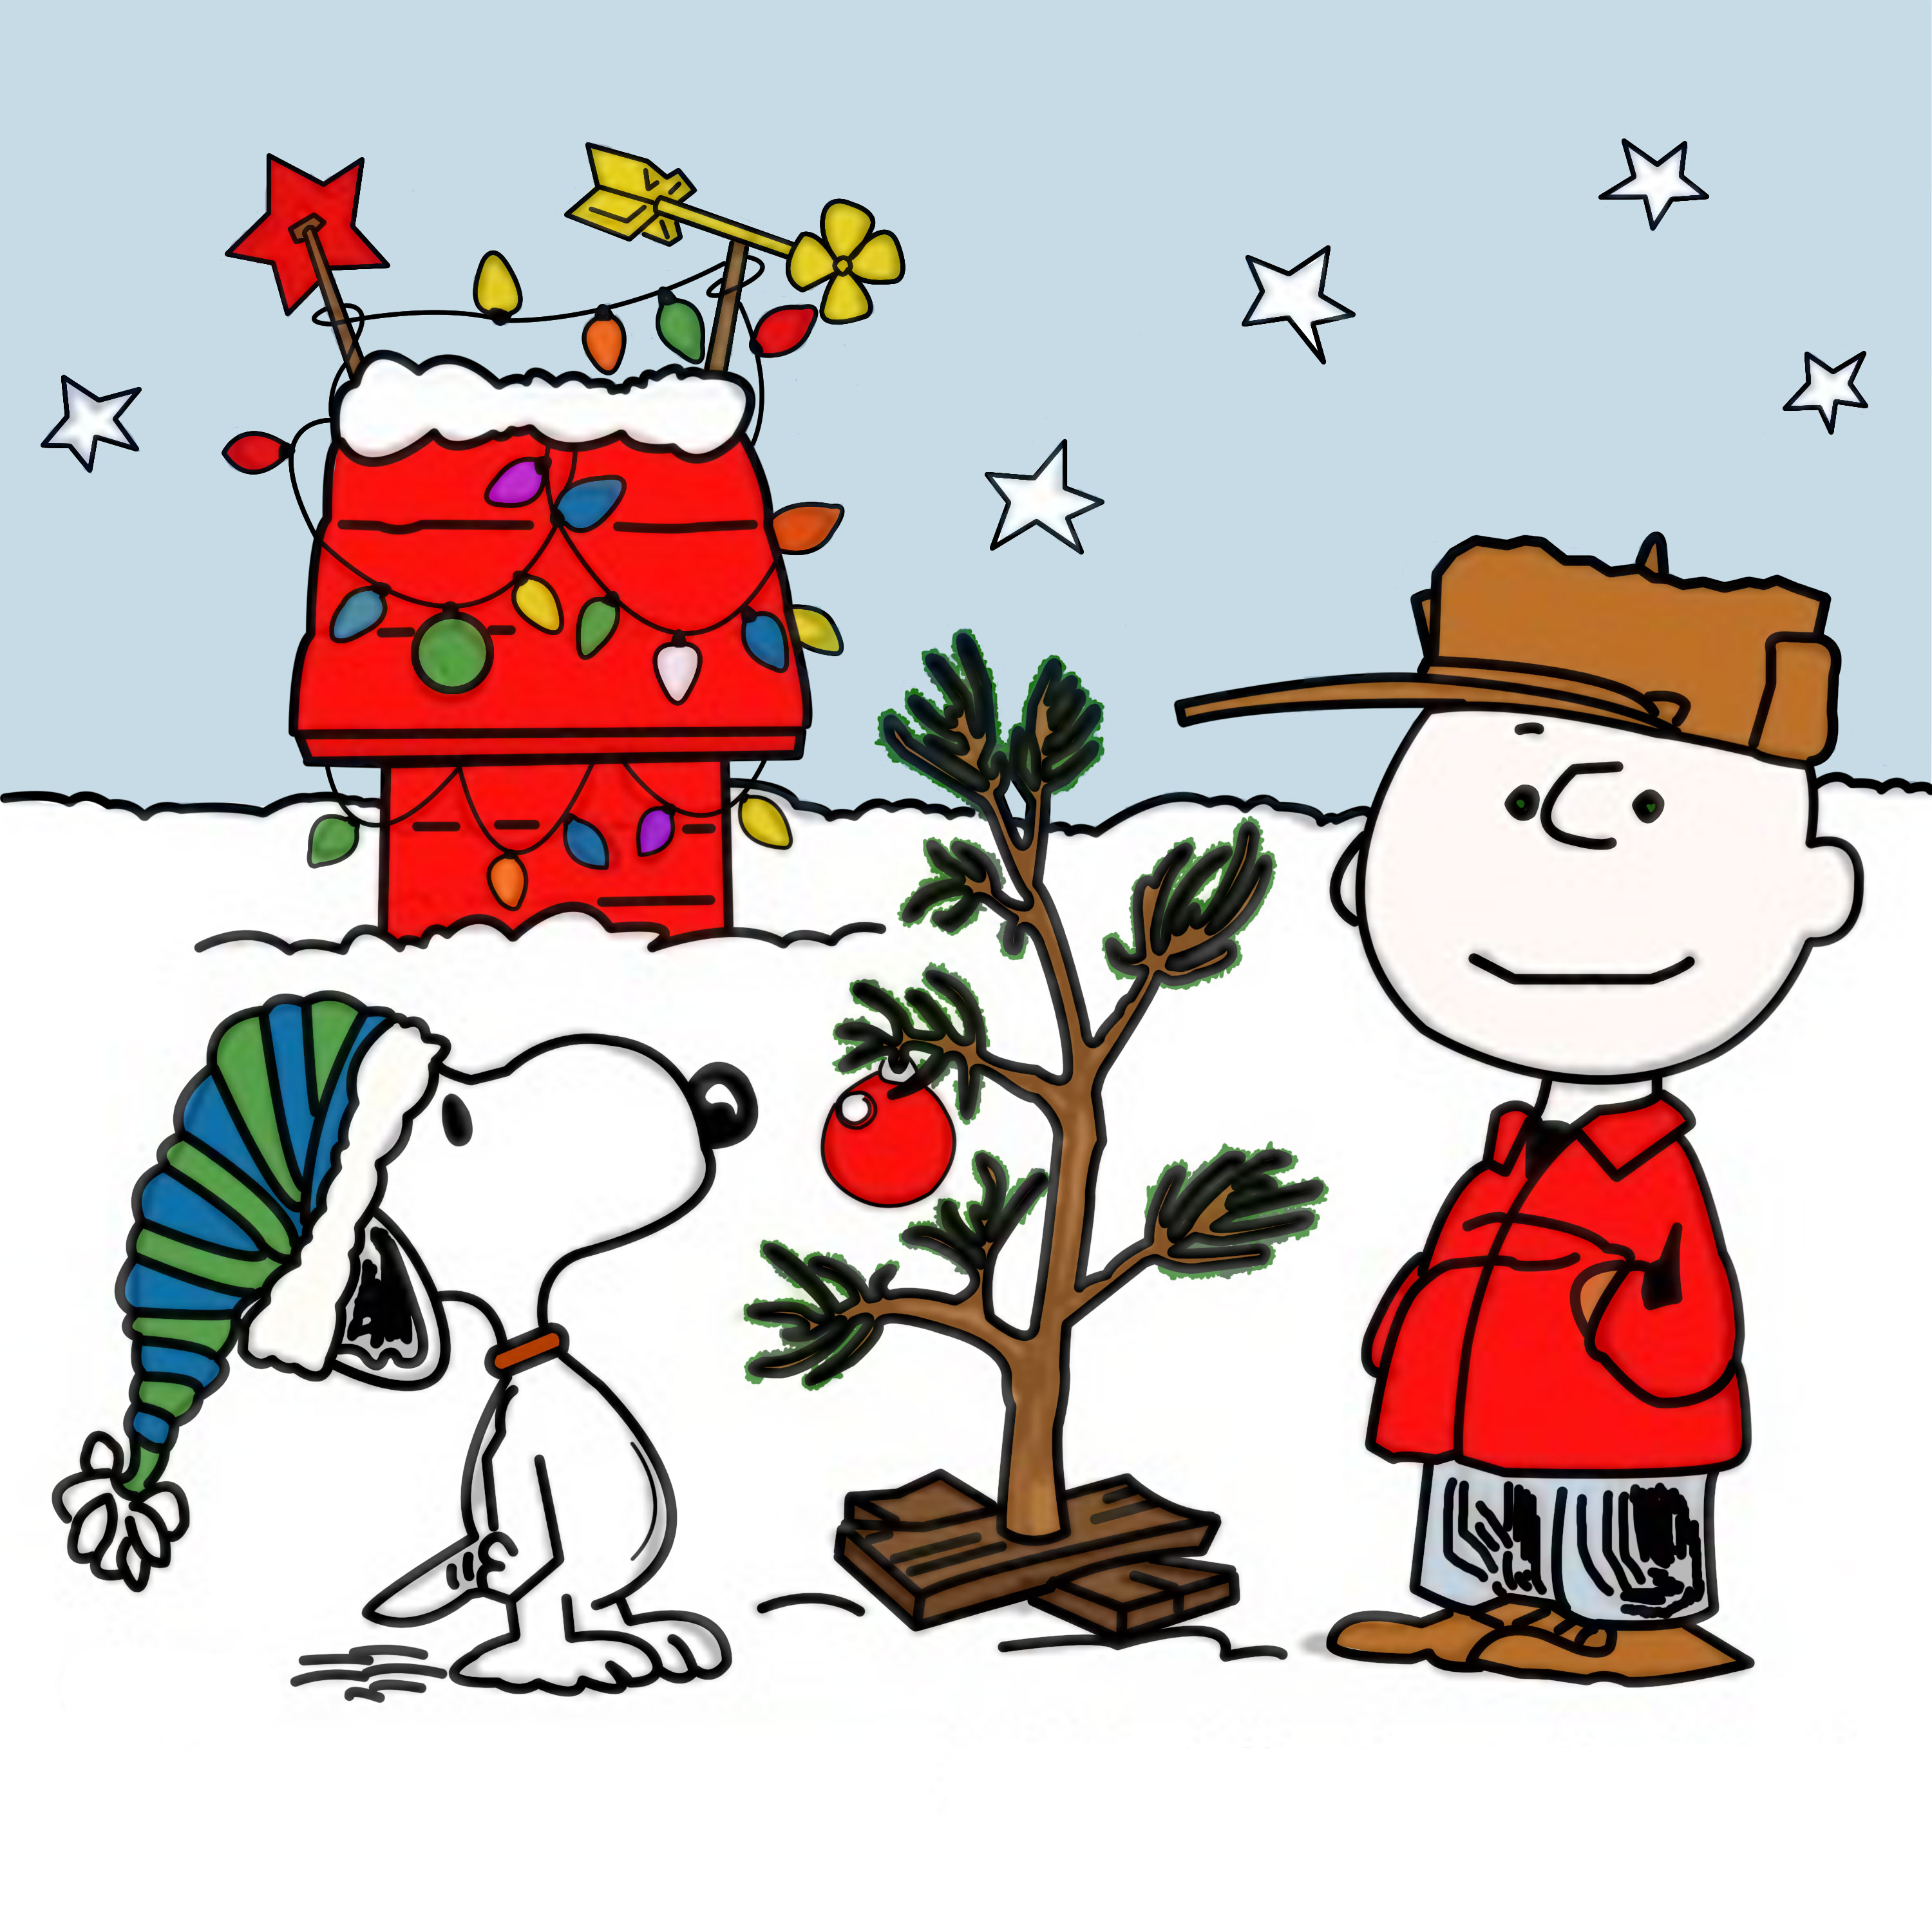 Coloring pictures charlie brown characters - Charlie Brown Peanuts Comics Snoopy Christmas Ry Wallpaper 3000x3000 160964 Wallpaperup